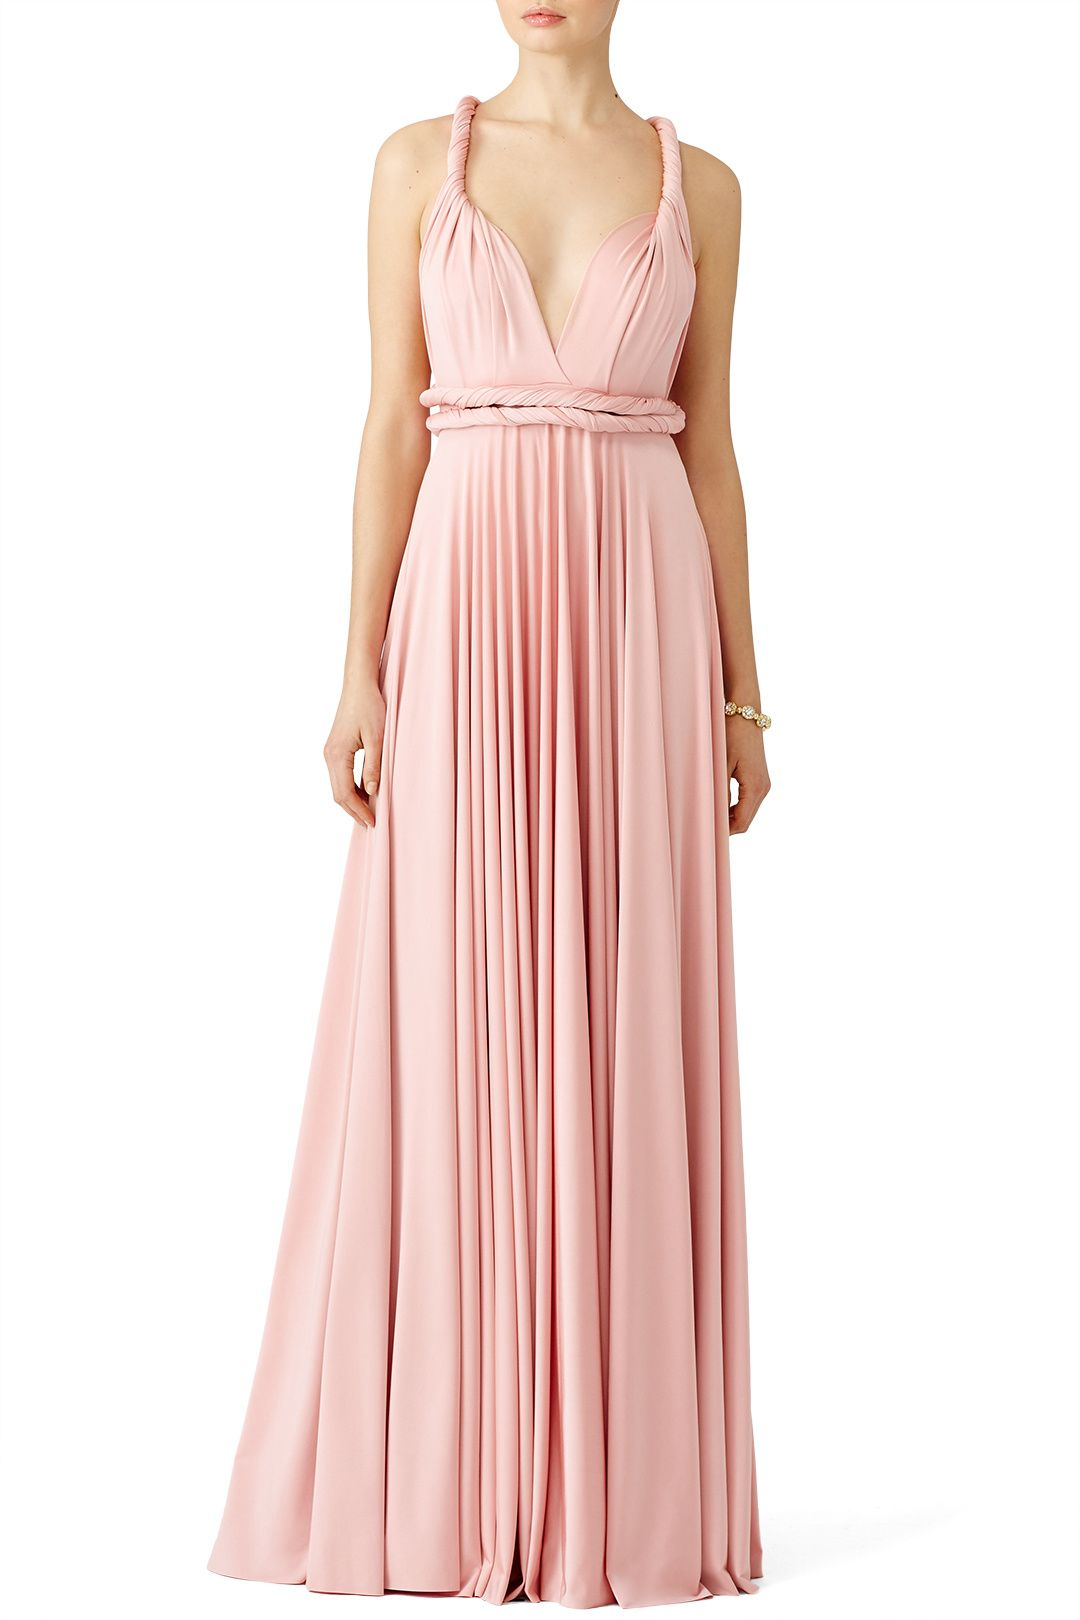 Blush Classic Convertible Gown